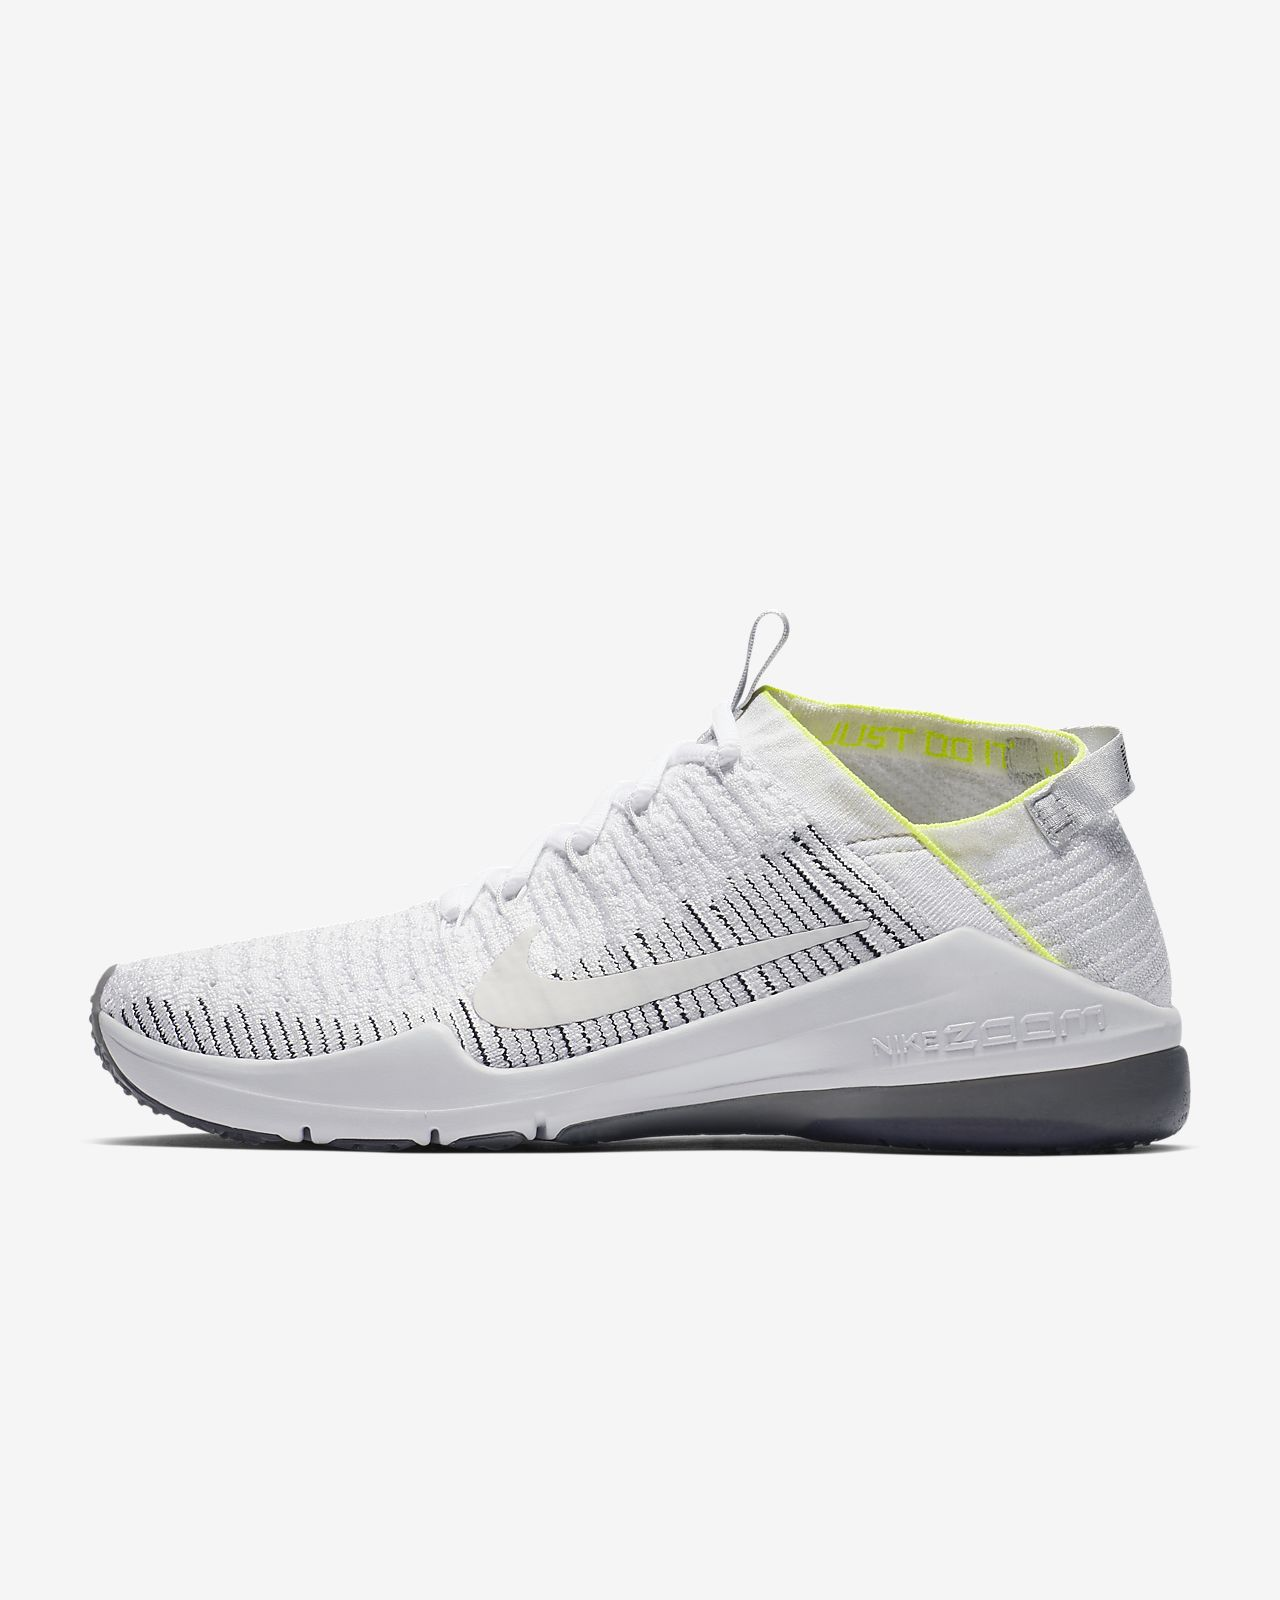 Et Nike De Training Zoom Air Fitness Fearless Chaussure Boxe 4qquwe0 0q0AY1